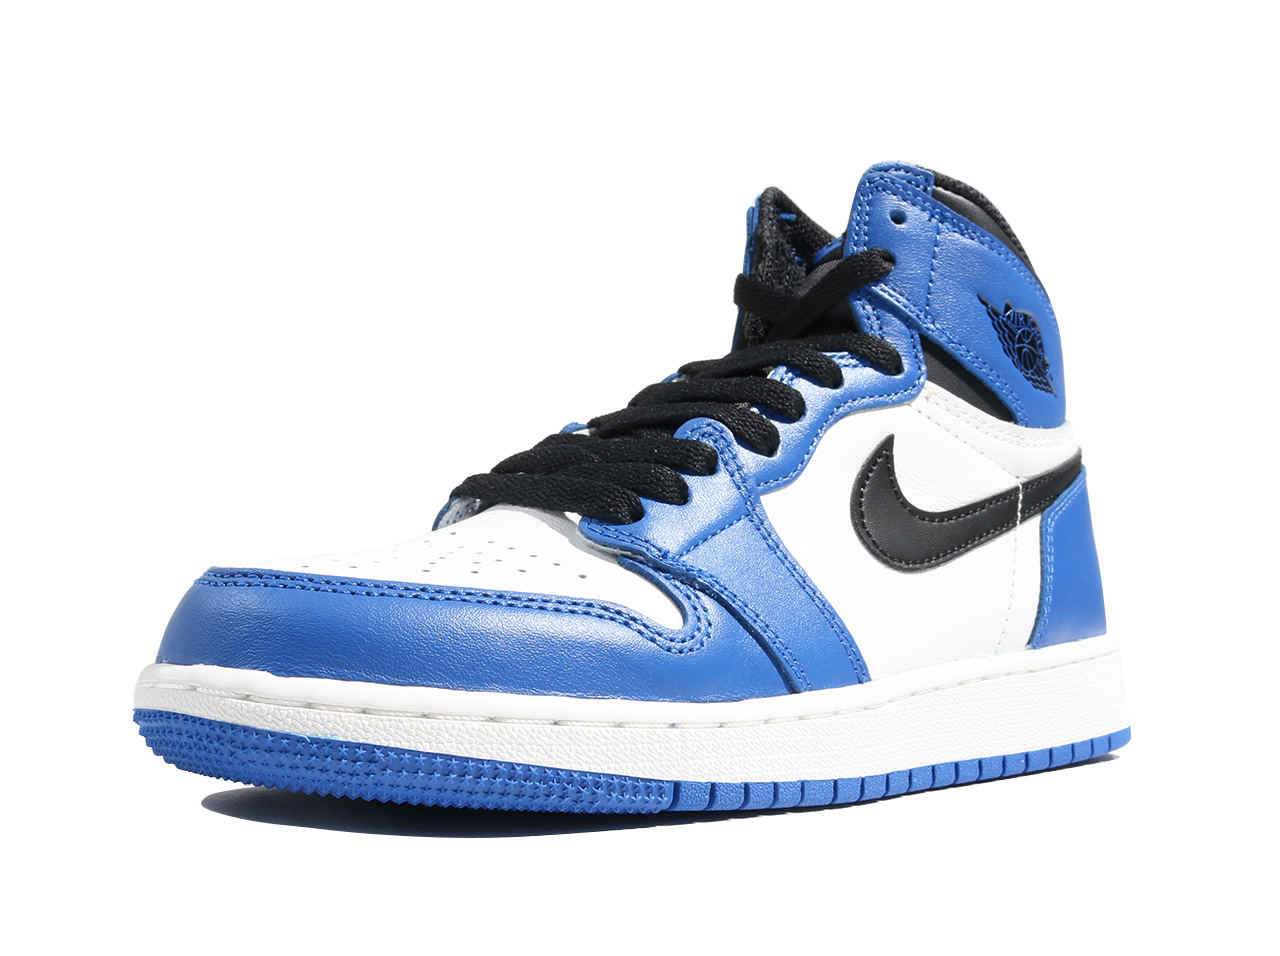 nike_air_jordan_1_retro_high_og_bg_575441_403